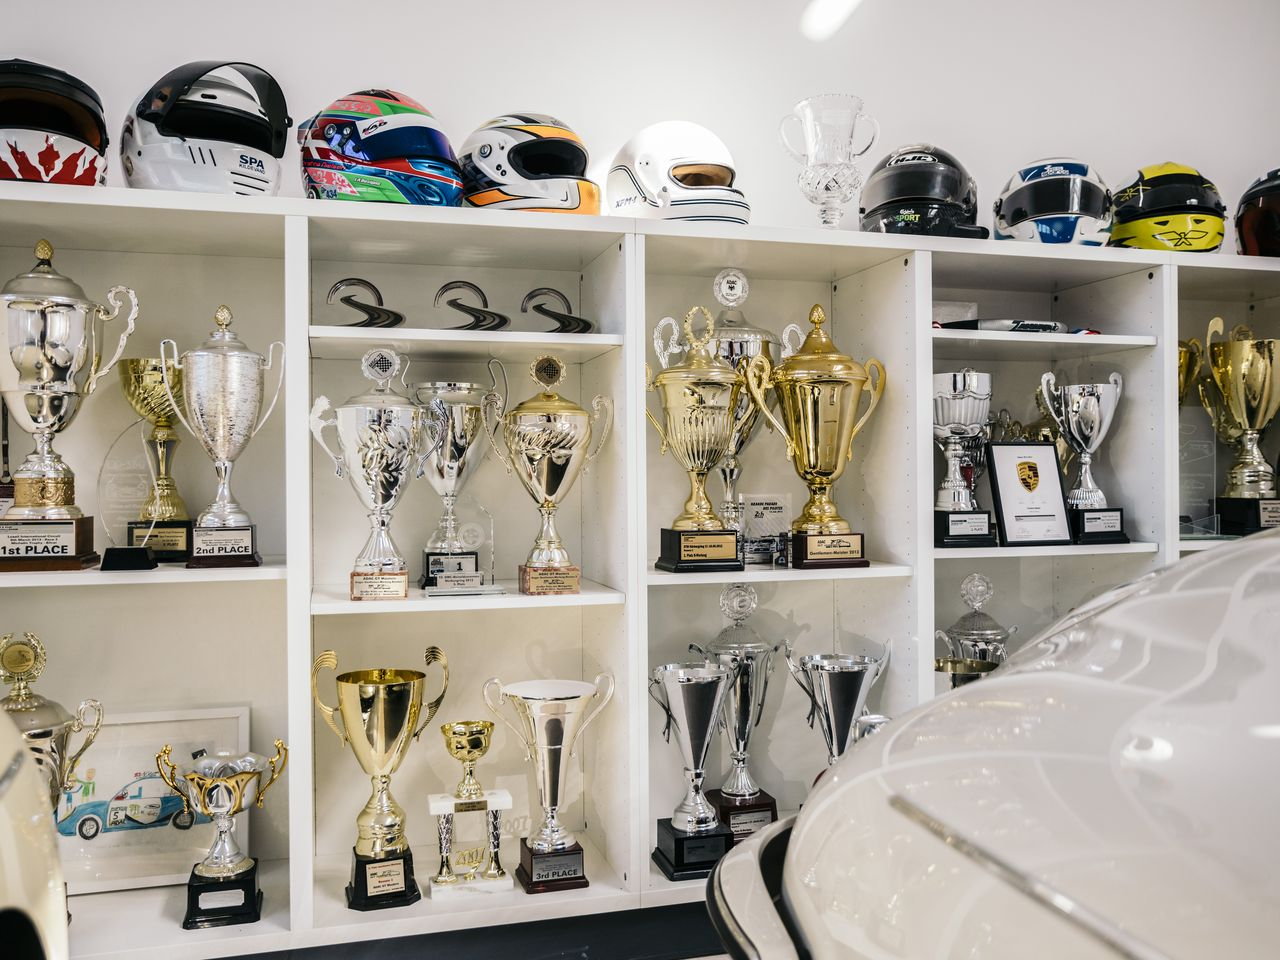 A collection of trophies in the garage testifies to the daughter's success: Christina Nielsen is not only a two-time and defending GTD champion, but also the first woman to win a major sports-car championship in the US.